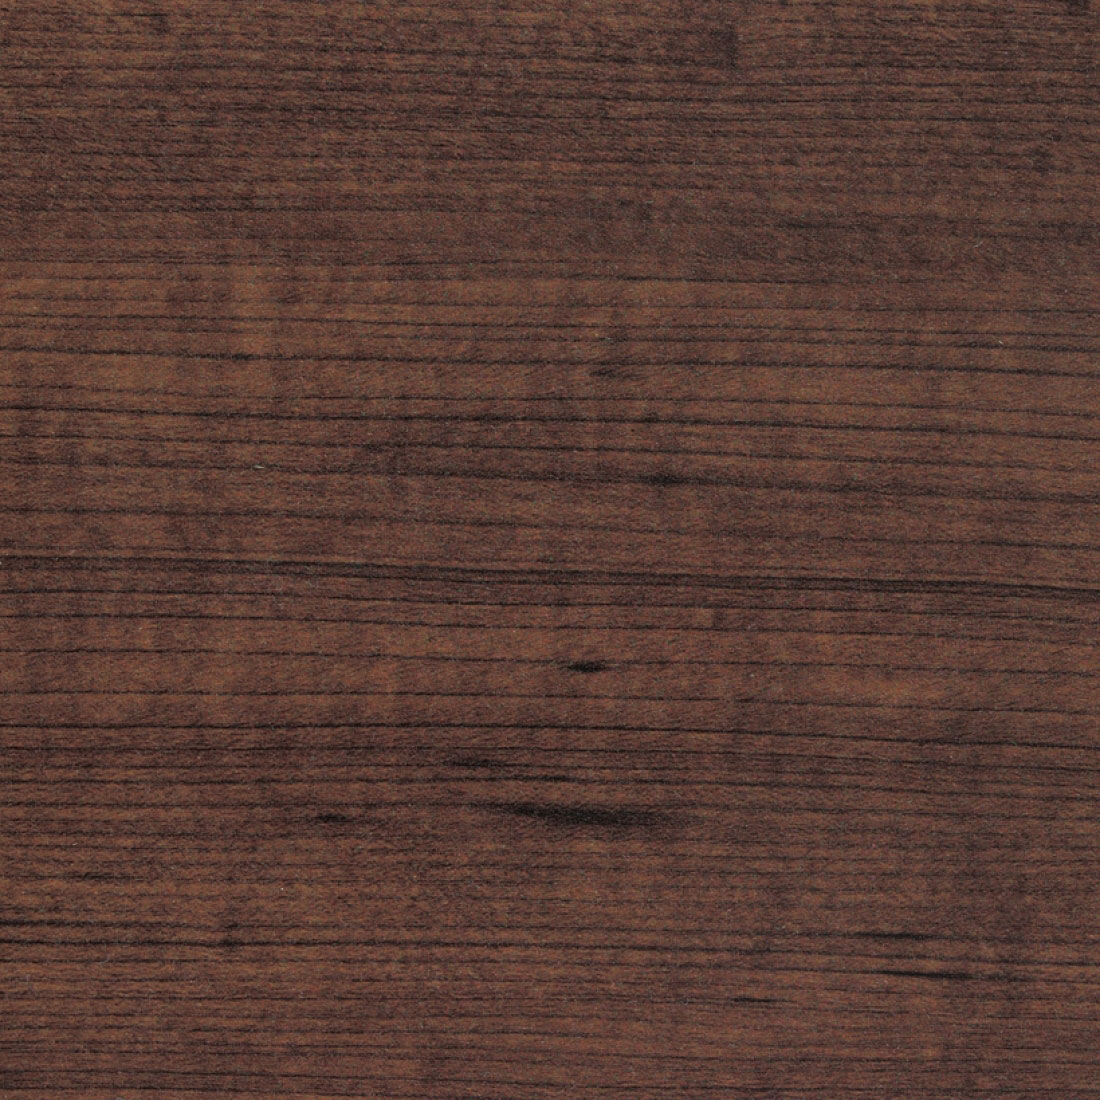 Laminates TWL Tiger Walnut